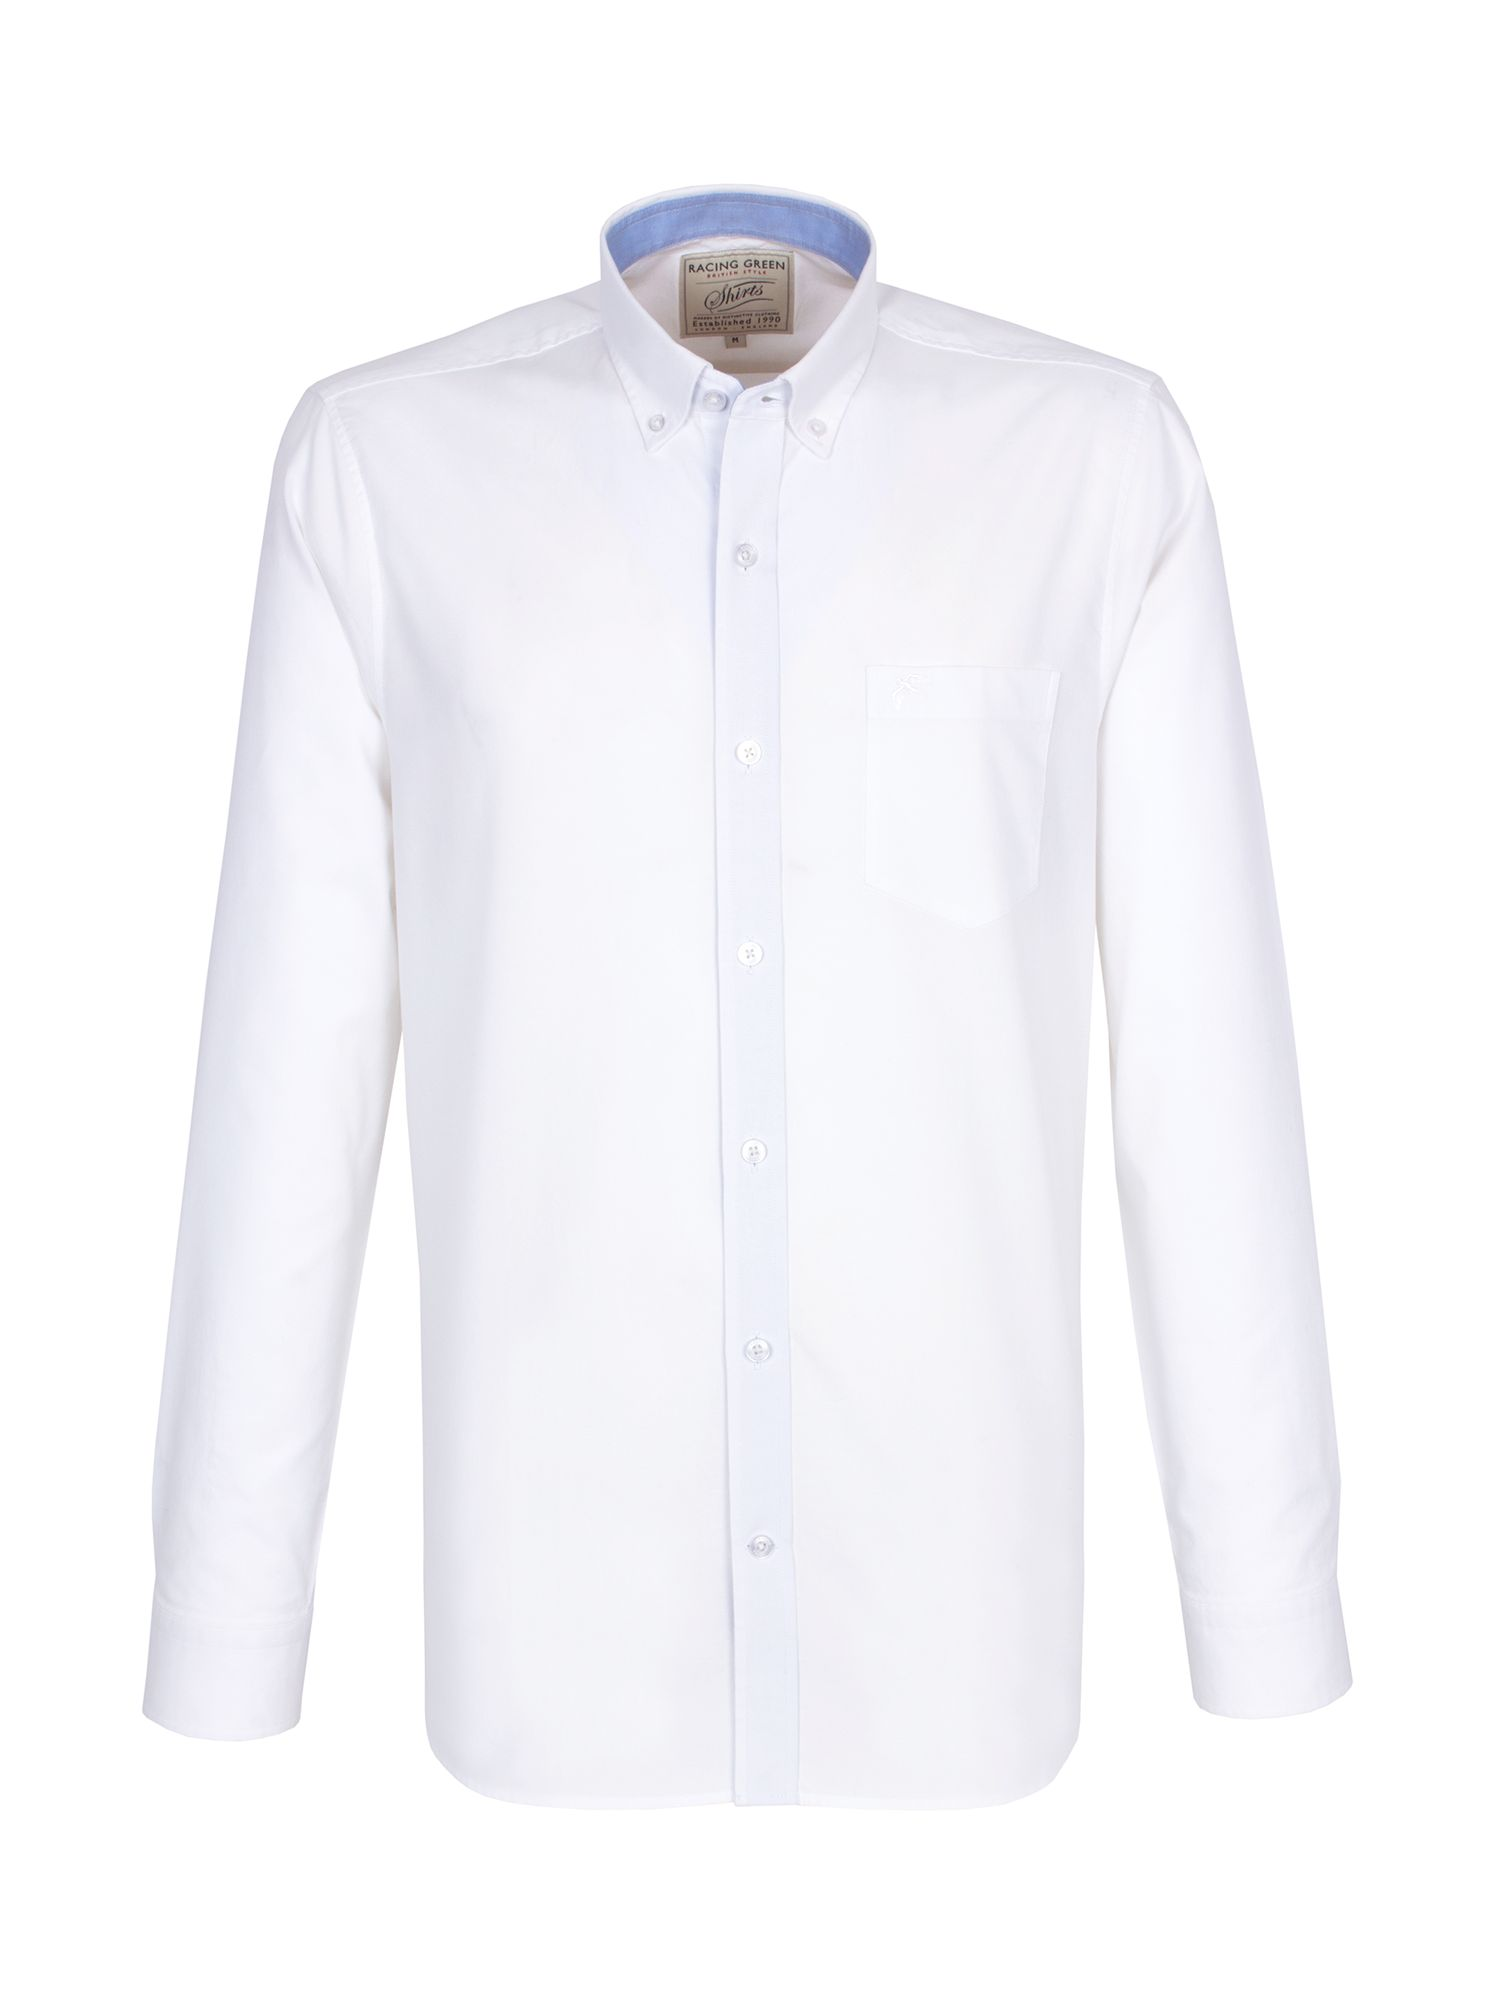 St ives washed oxford shirt